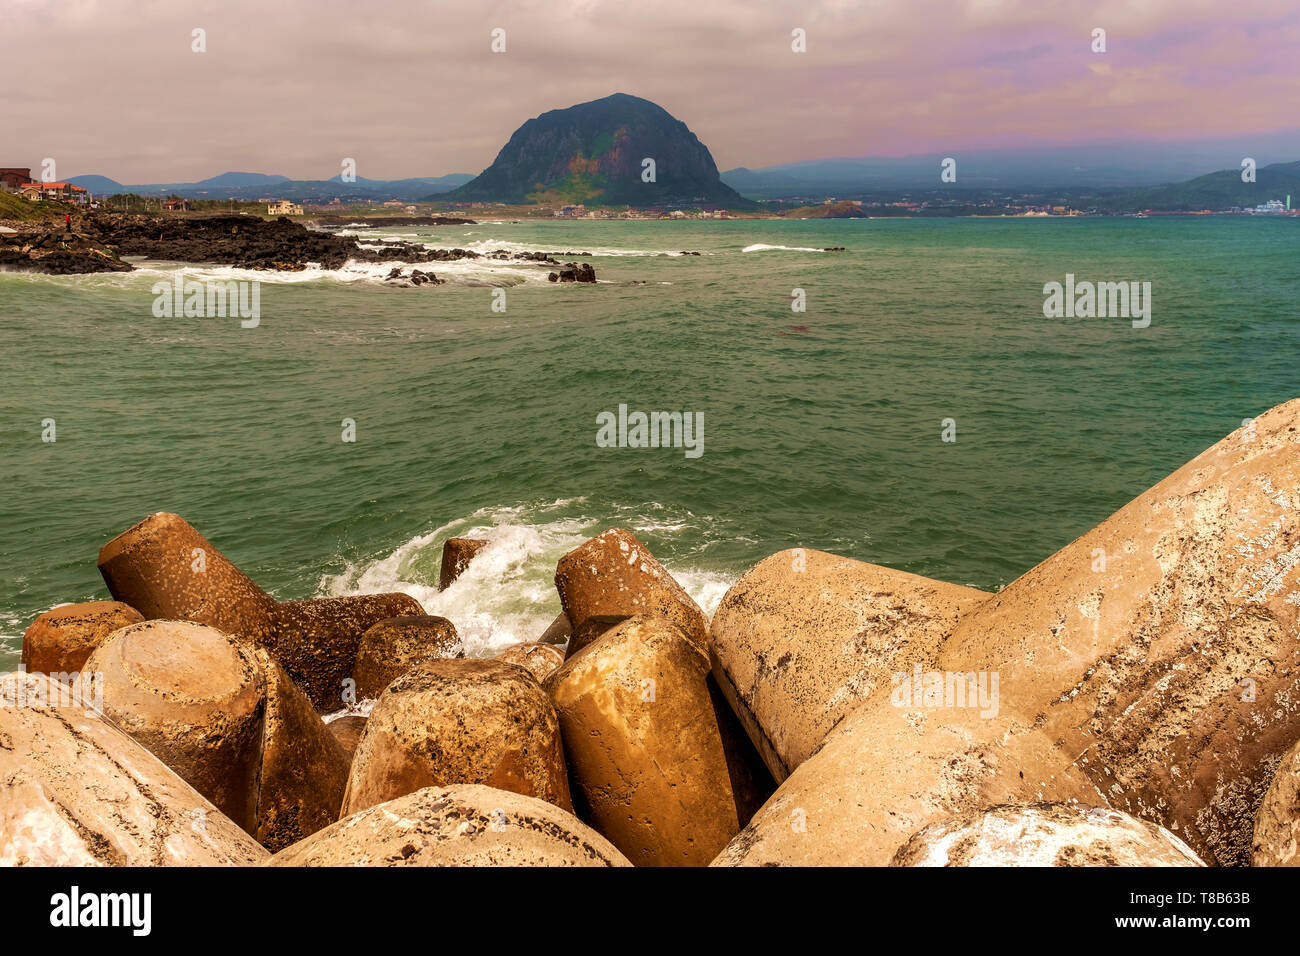 pier in the beach, Jeju, South Korea - Stock Image